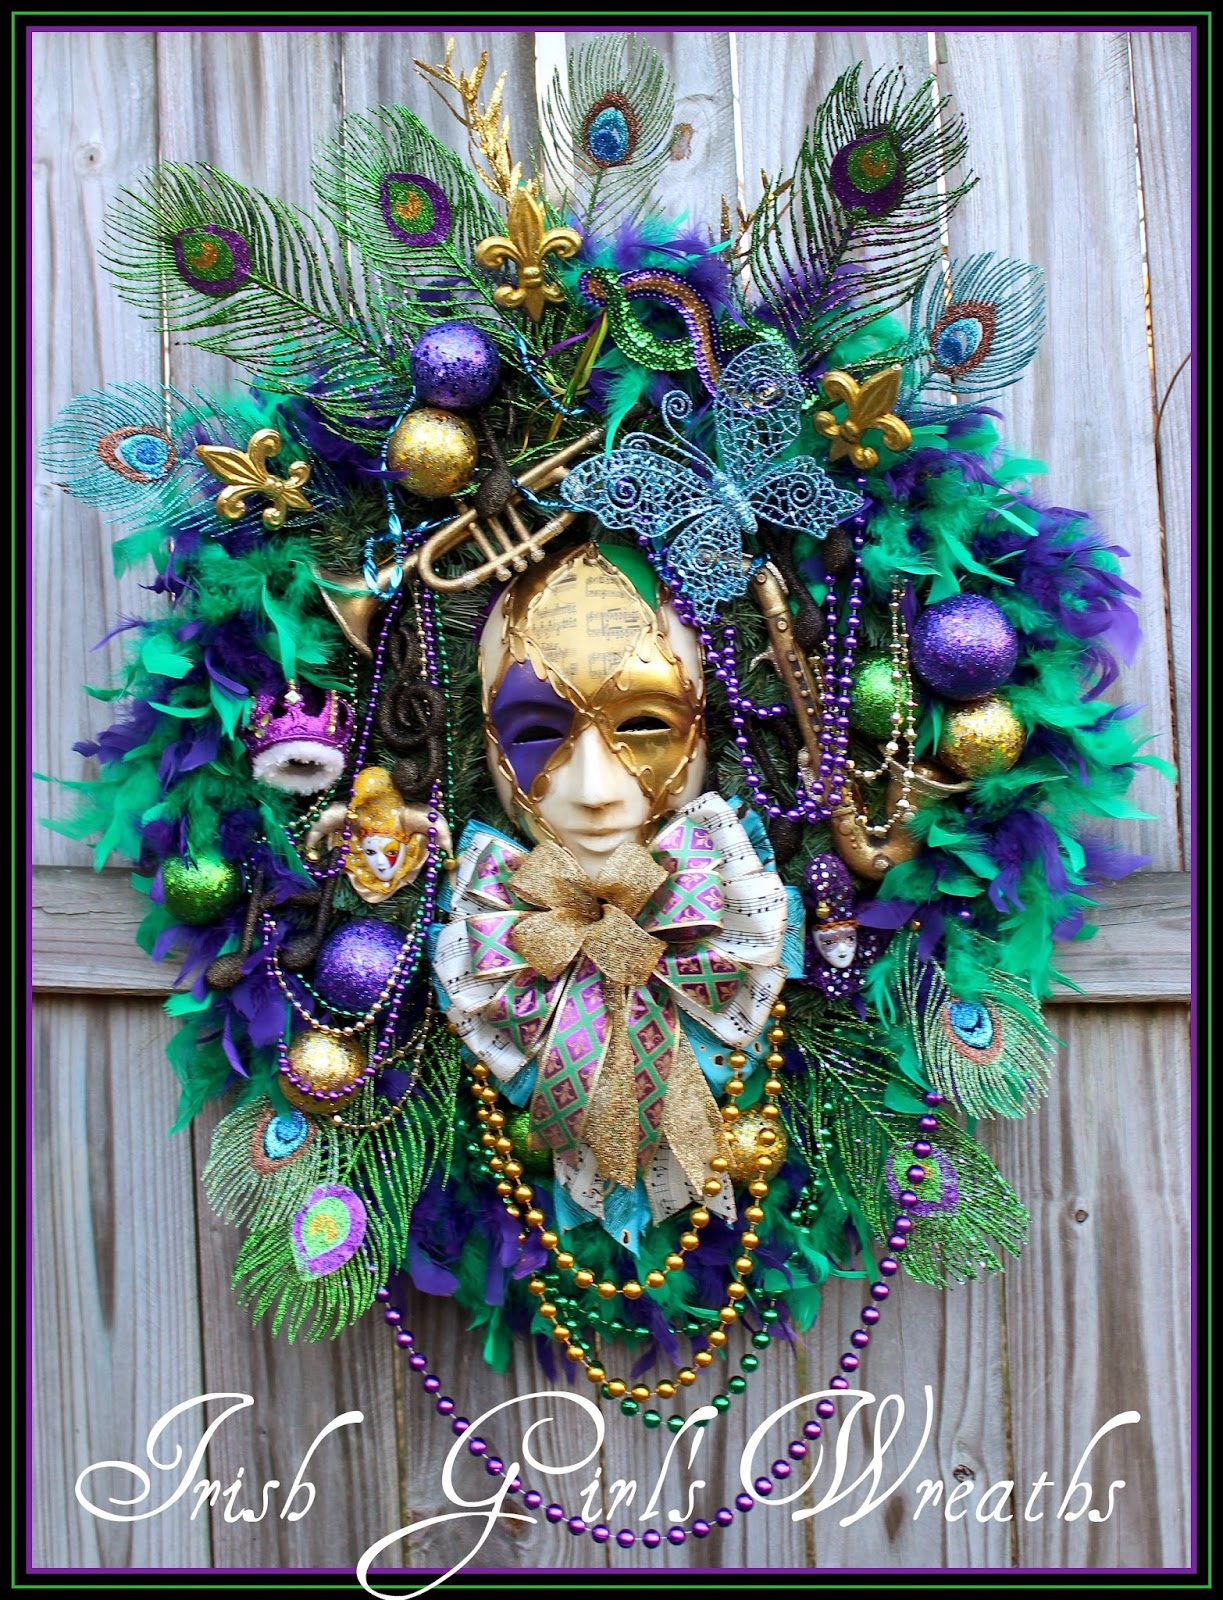 Music Man Birthplace of Jazz Mardi Gras Wreath